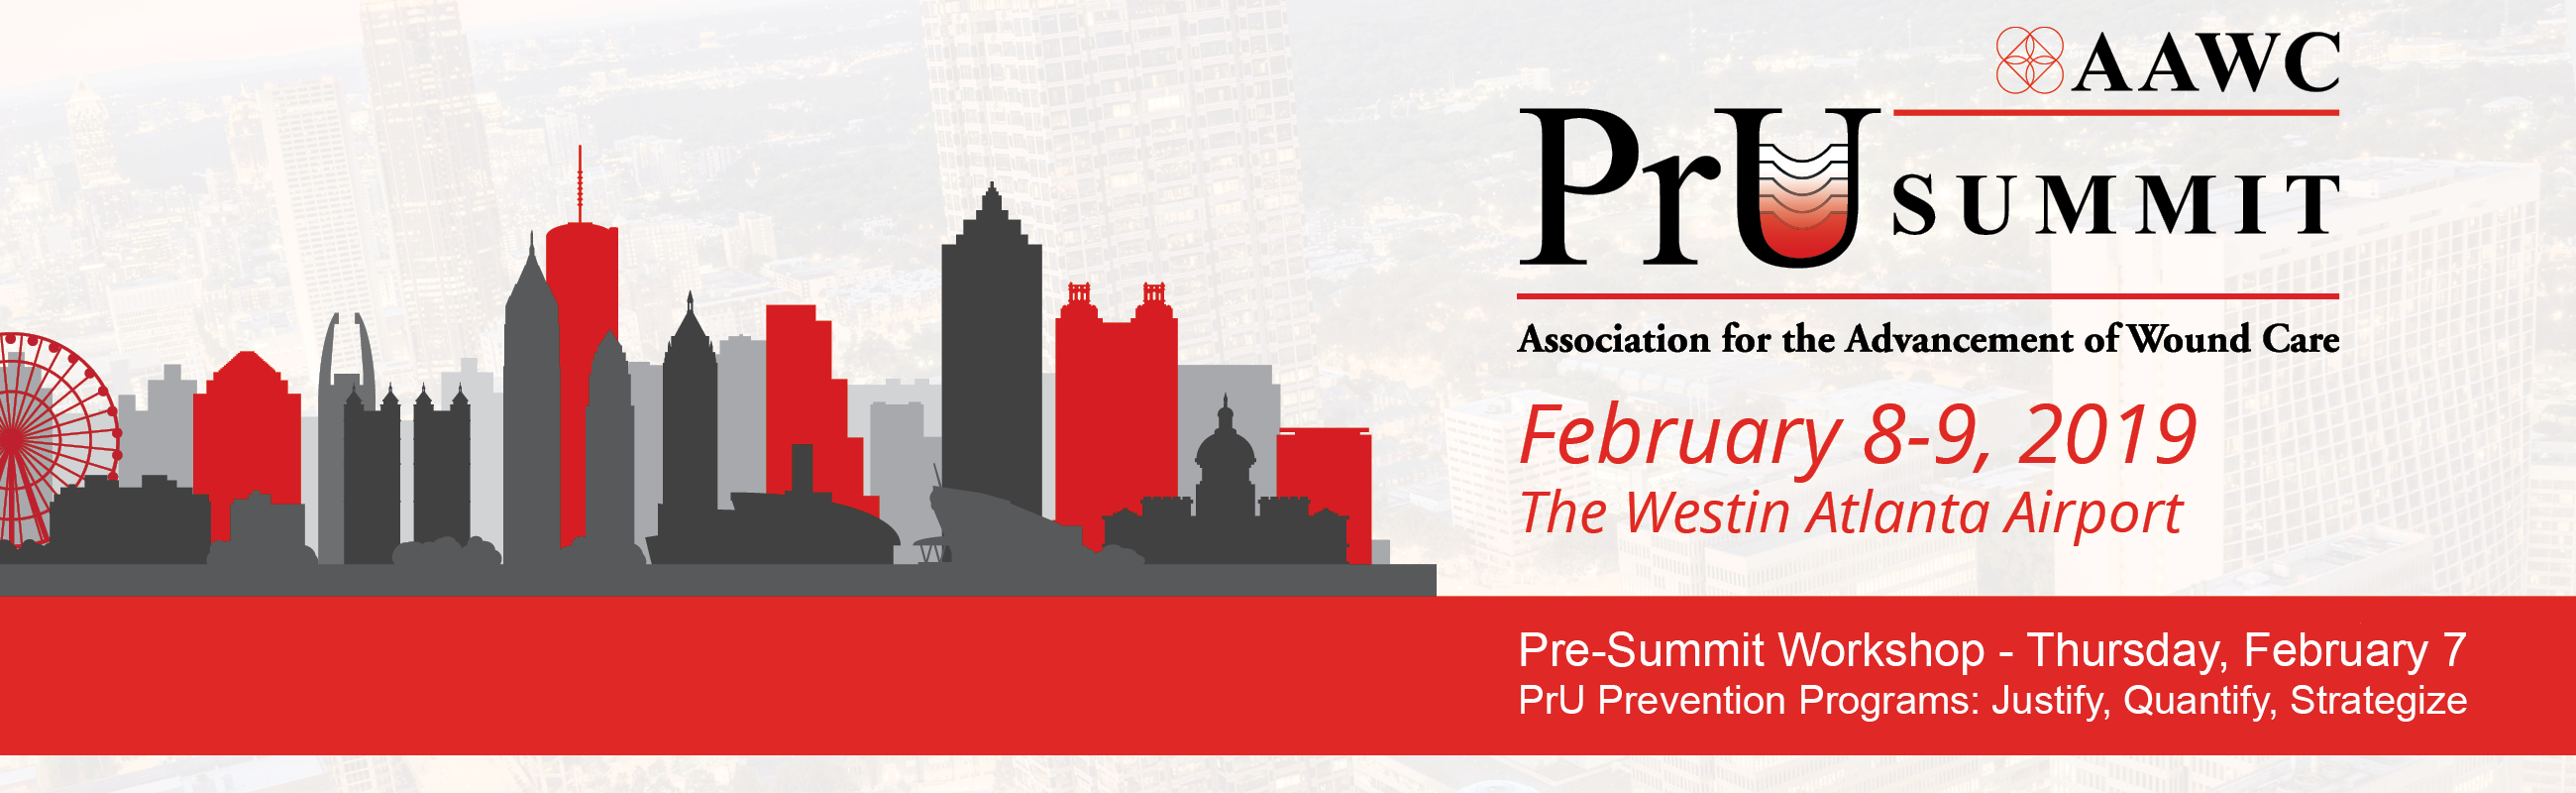 2019 AAWC PrU Summit